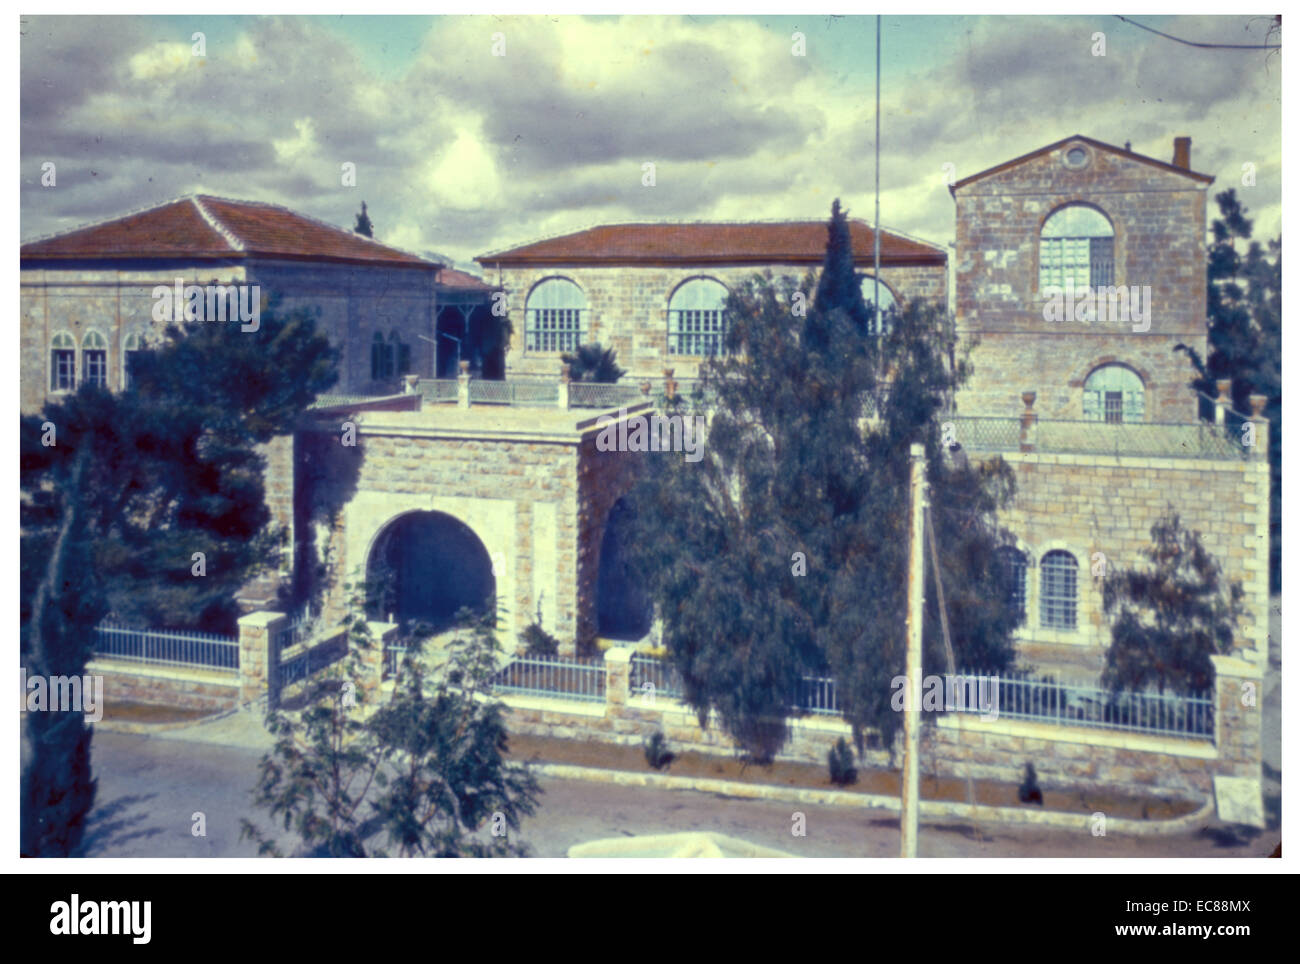 The American Colony (Now the American Colony Hotel), East Jerusalem; Palestine (Israel) 1950 Stock Photo